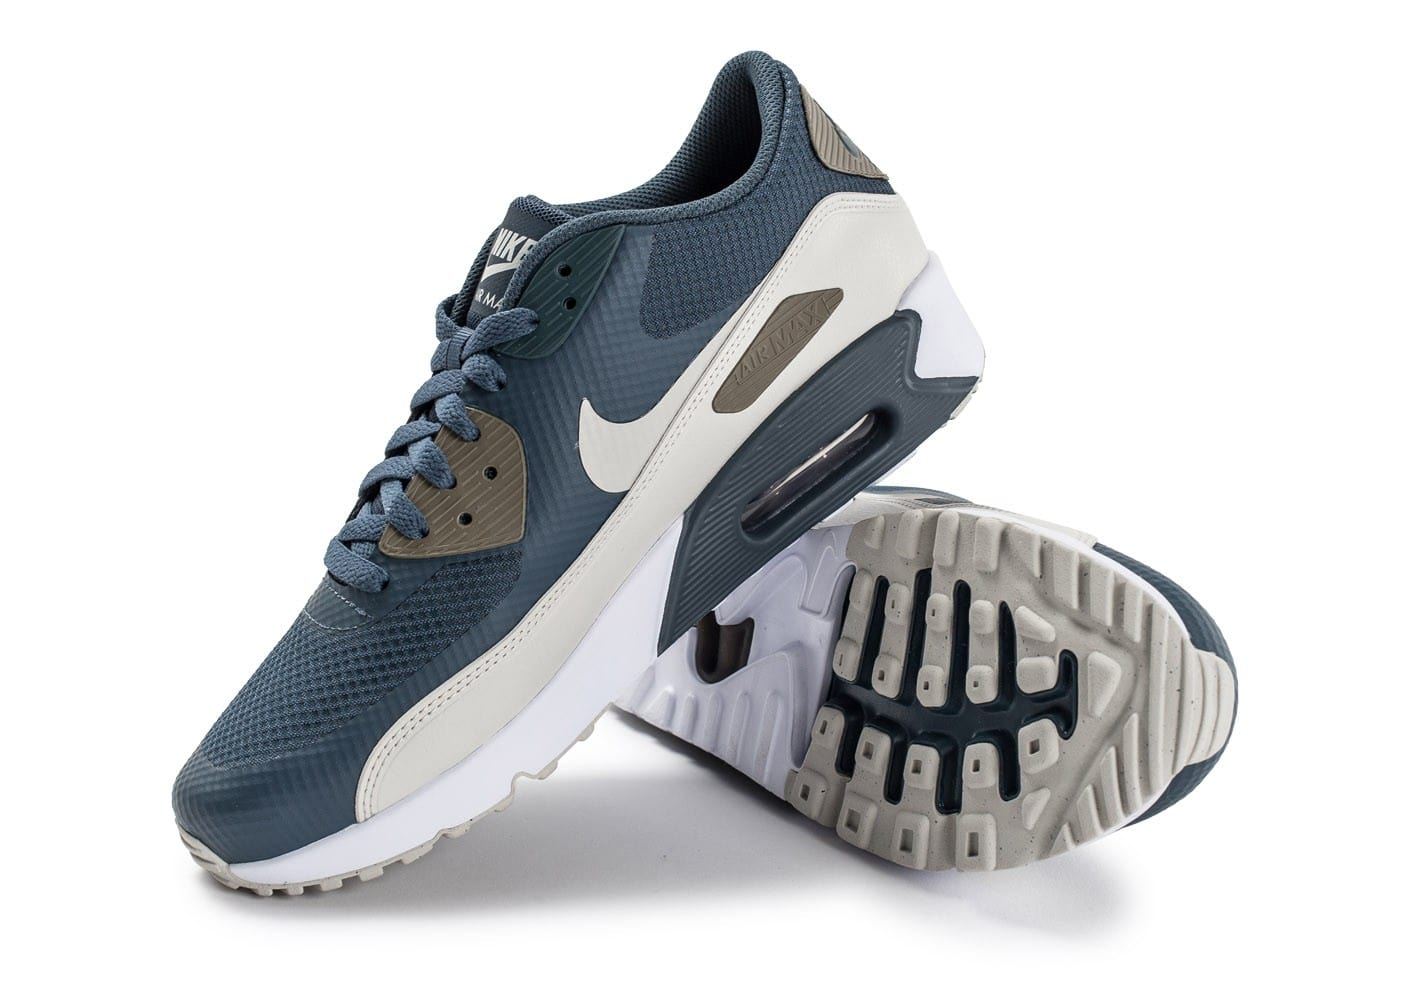 Nike Chaussures Fox Homme Max Baskets Air Blue Essential 90 Ultra gqdHpnd6x